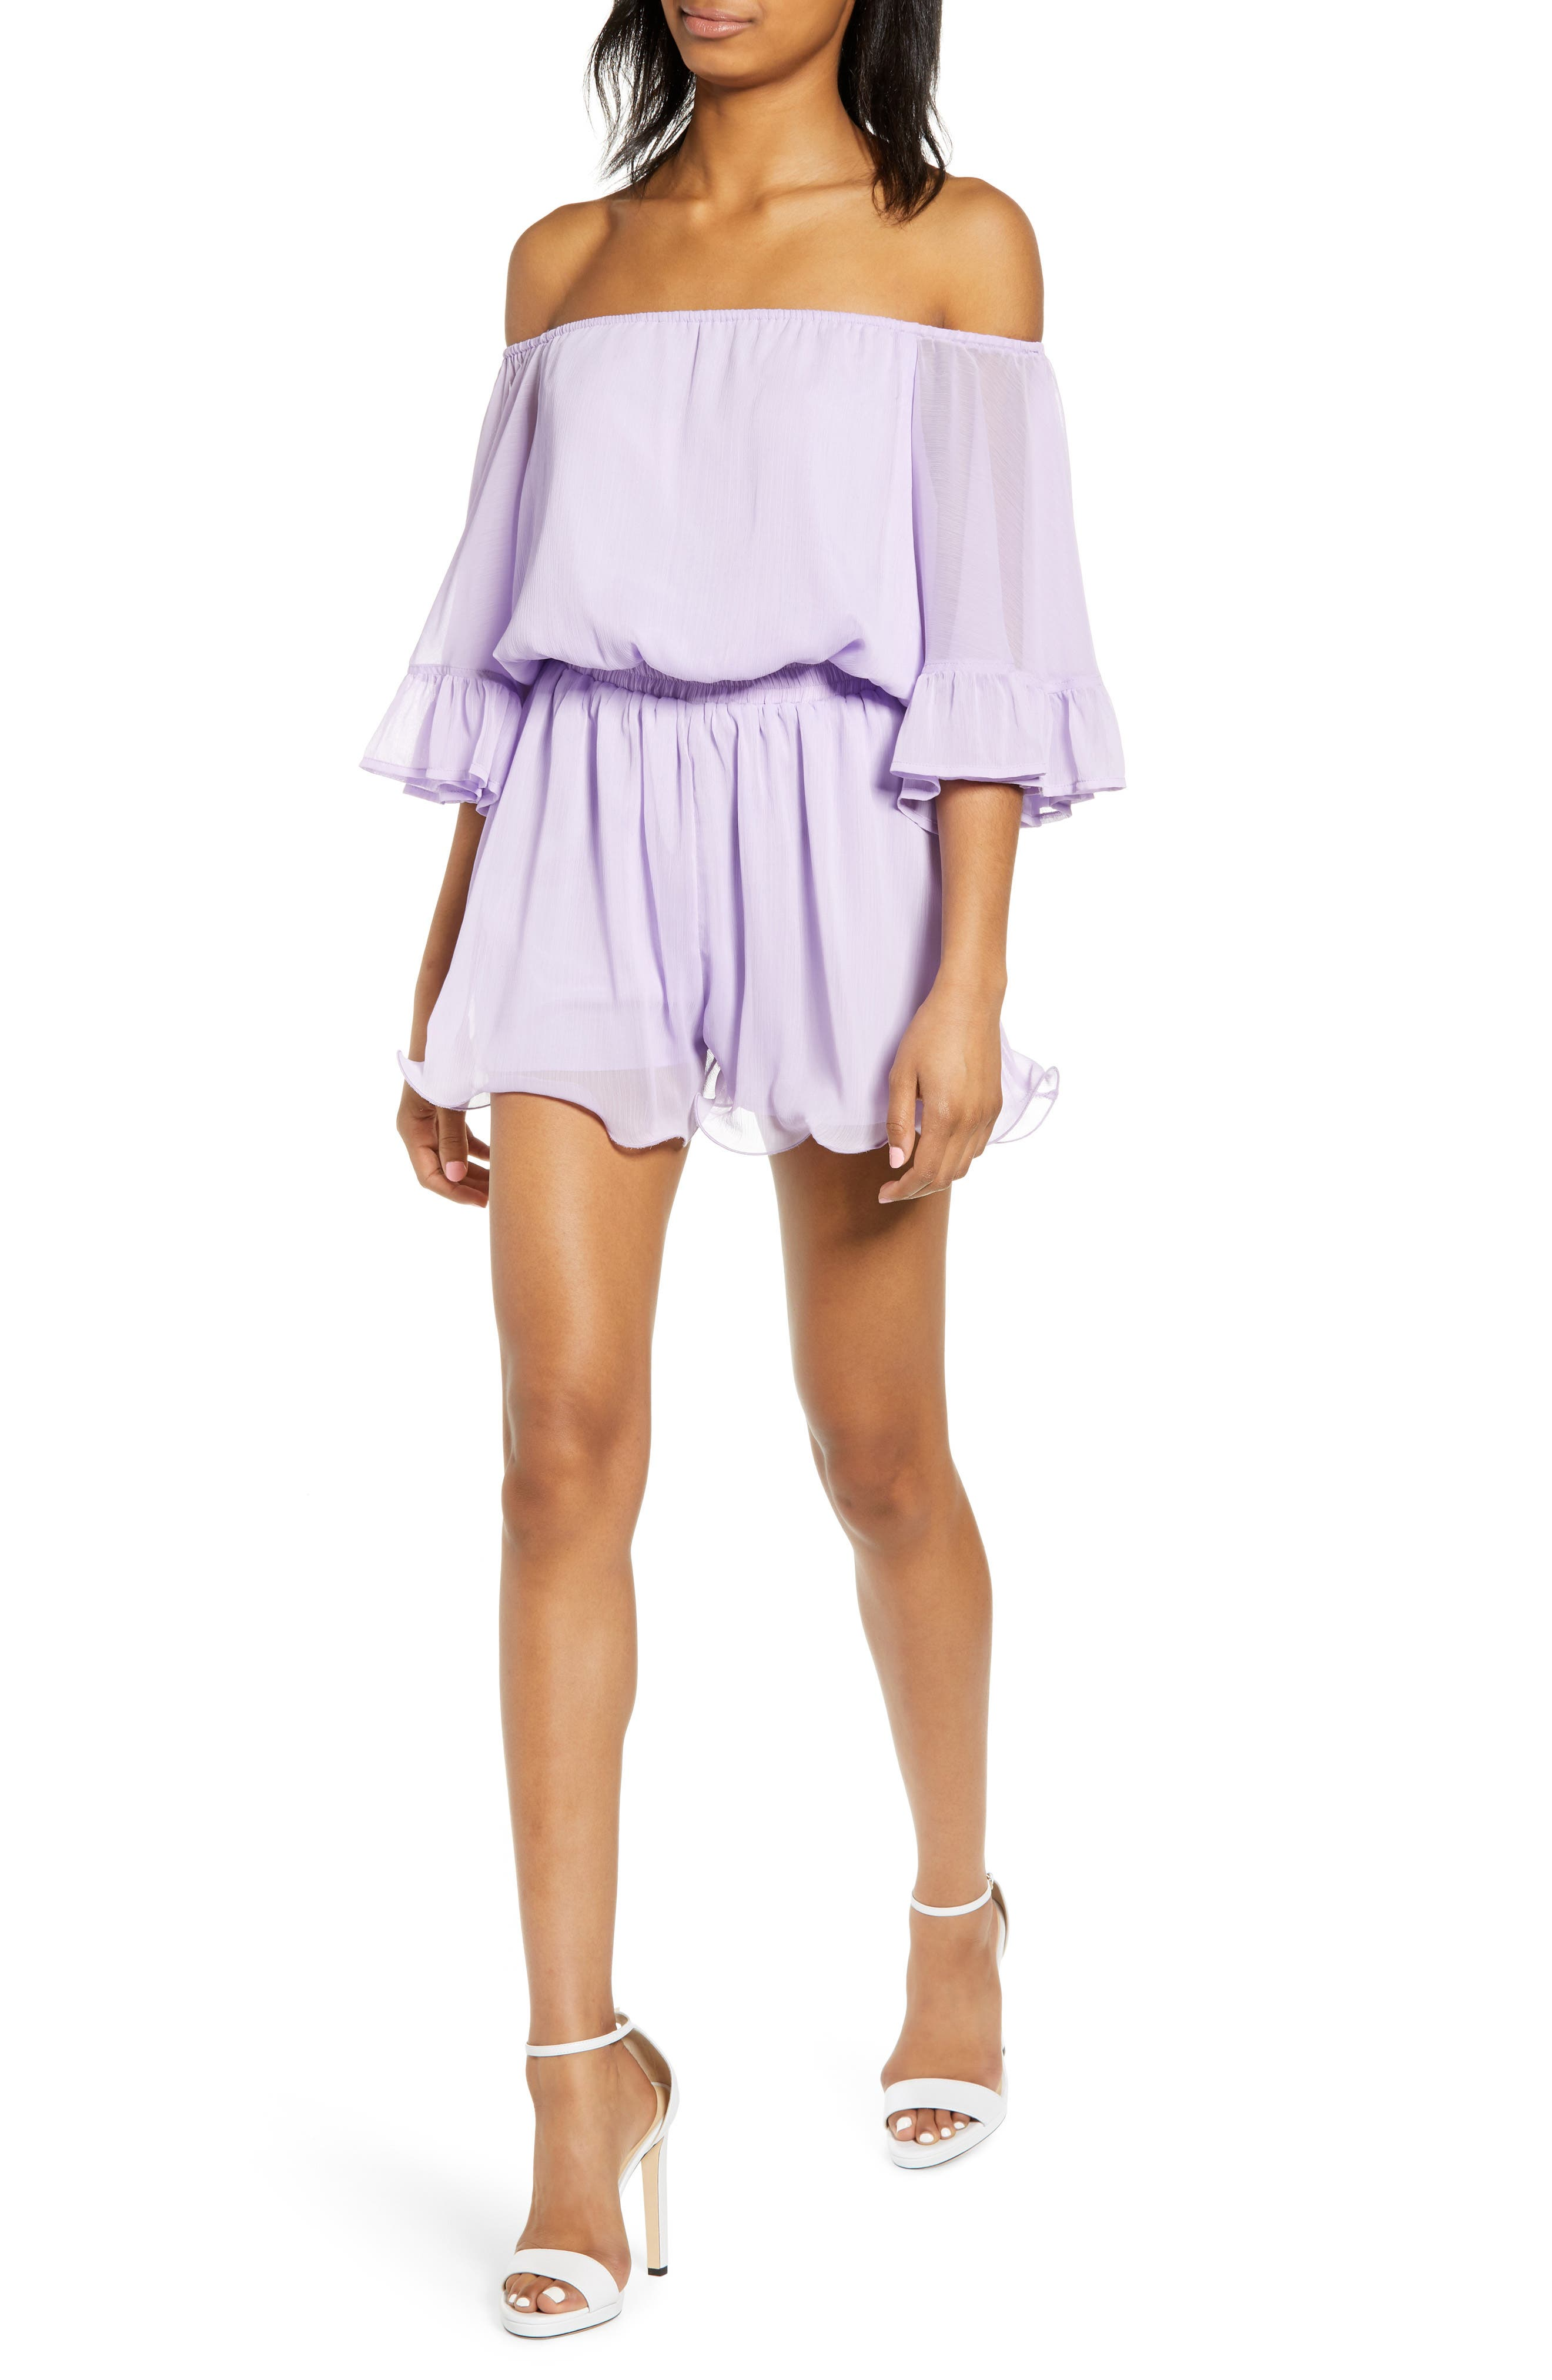 Endless Rose Tops OFF THE SHOULDER RUFFLE SLEEVE ROMPER